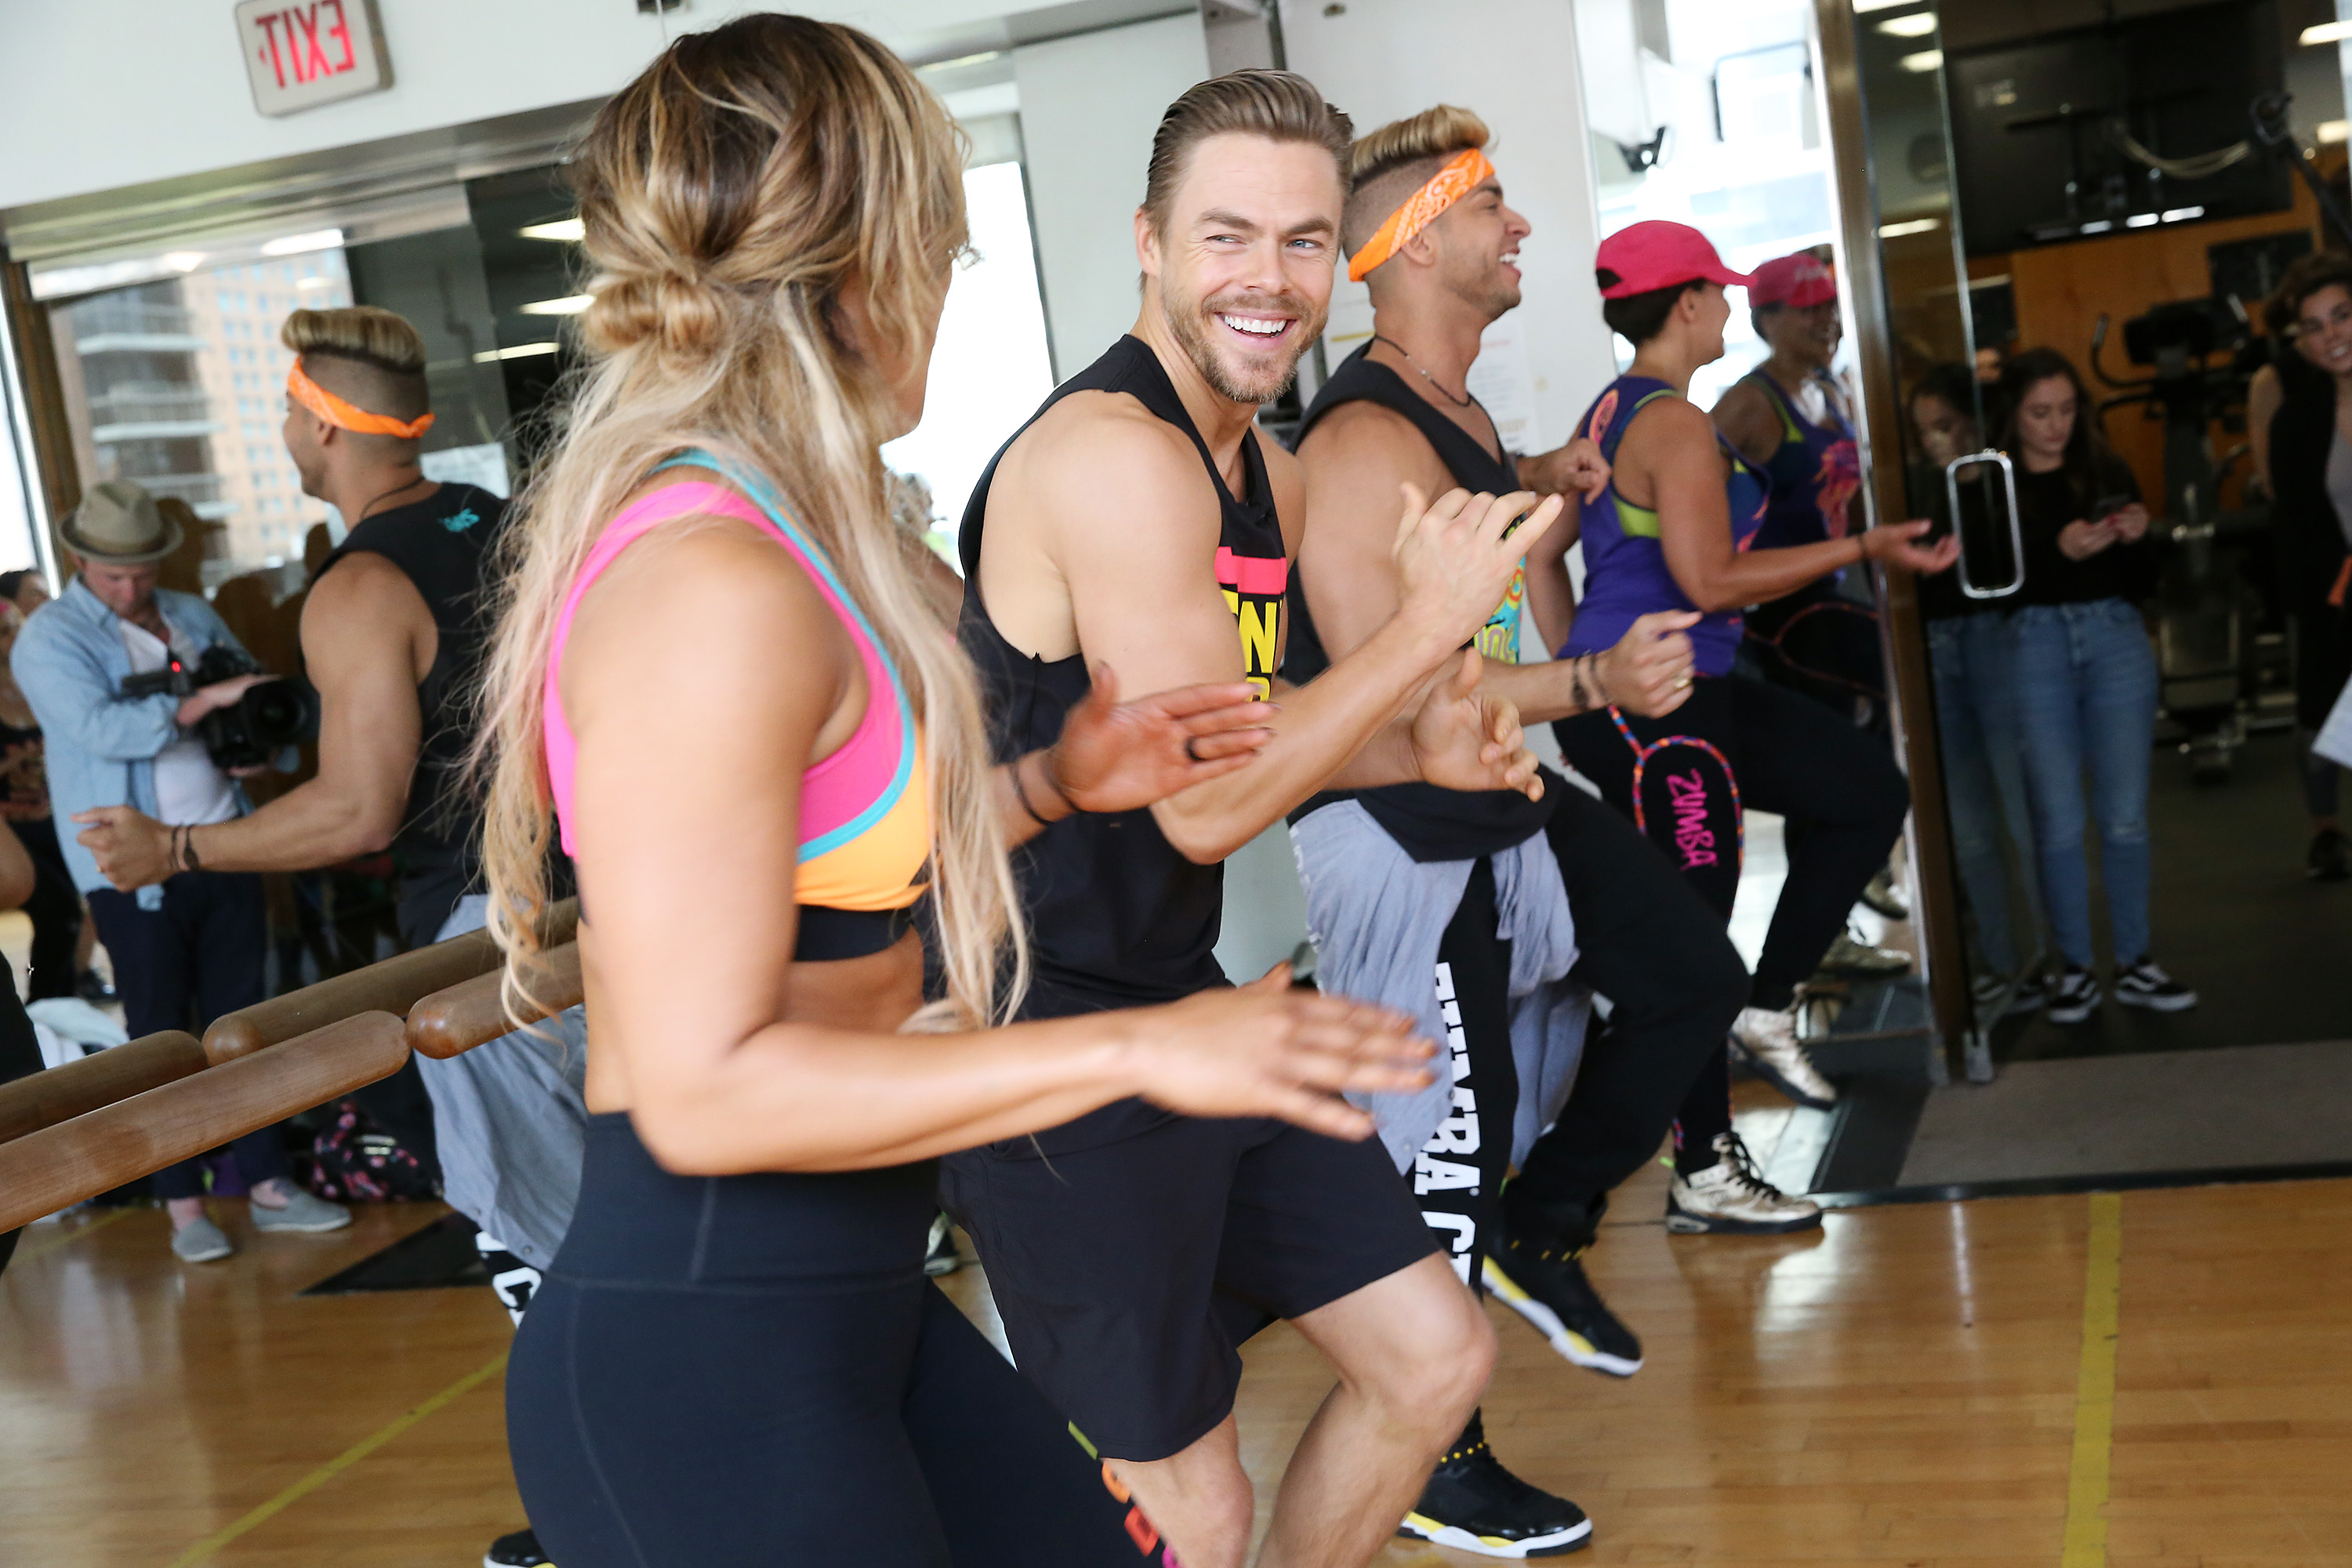 NEW YORK, NEW YORK - APRIL 25: Emmy Award-winning choreographer, dancer and NBCs World of Dance judge Derek Hough crashes a Zumba class at Complete Body in Midtown. Derek has teamed up with the worlds largest dance-fitness company to launch the Zumba Breaks initiative, motivating millions take 10-15 minutes out of their day to get up and move, on April 25, 2019 in New York City. (Photo by Monica Schipper/Getty Images for Zumba Fitness)